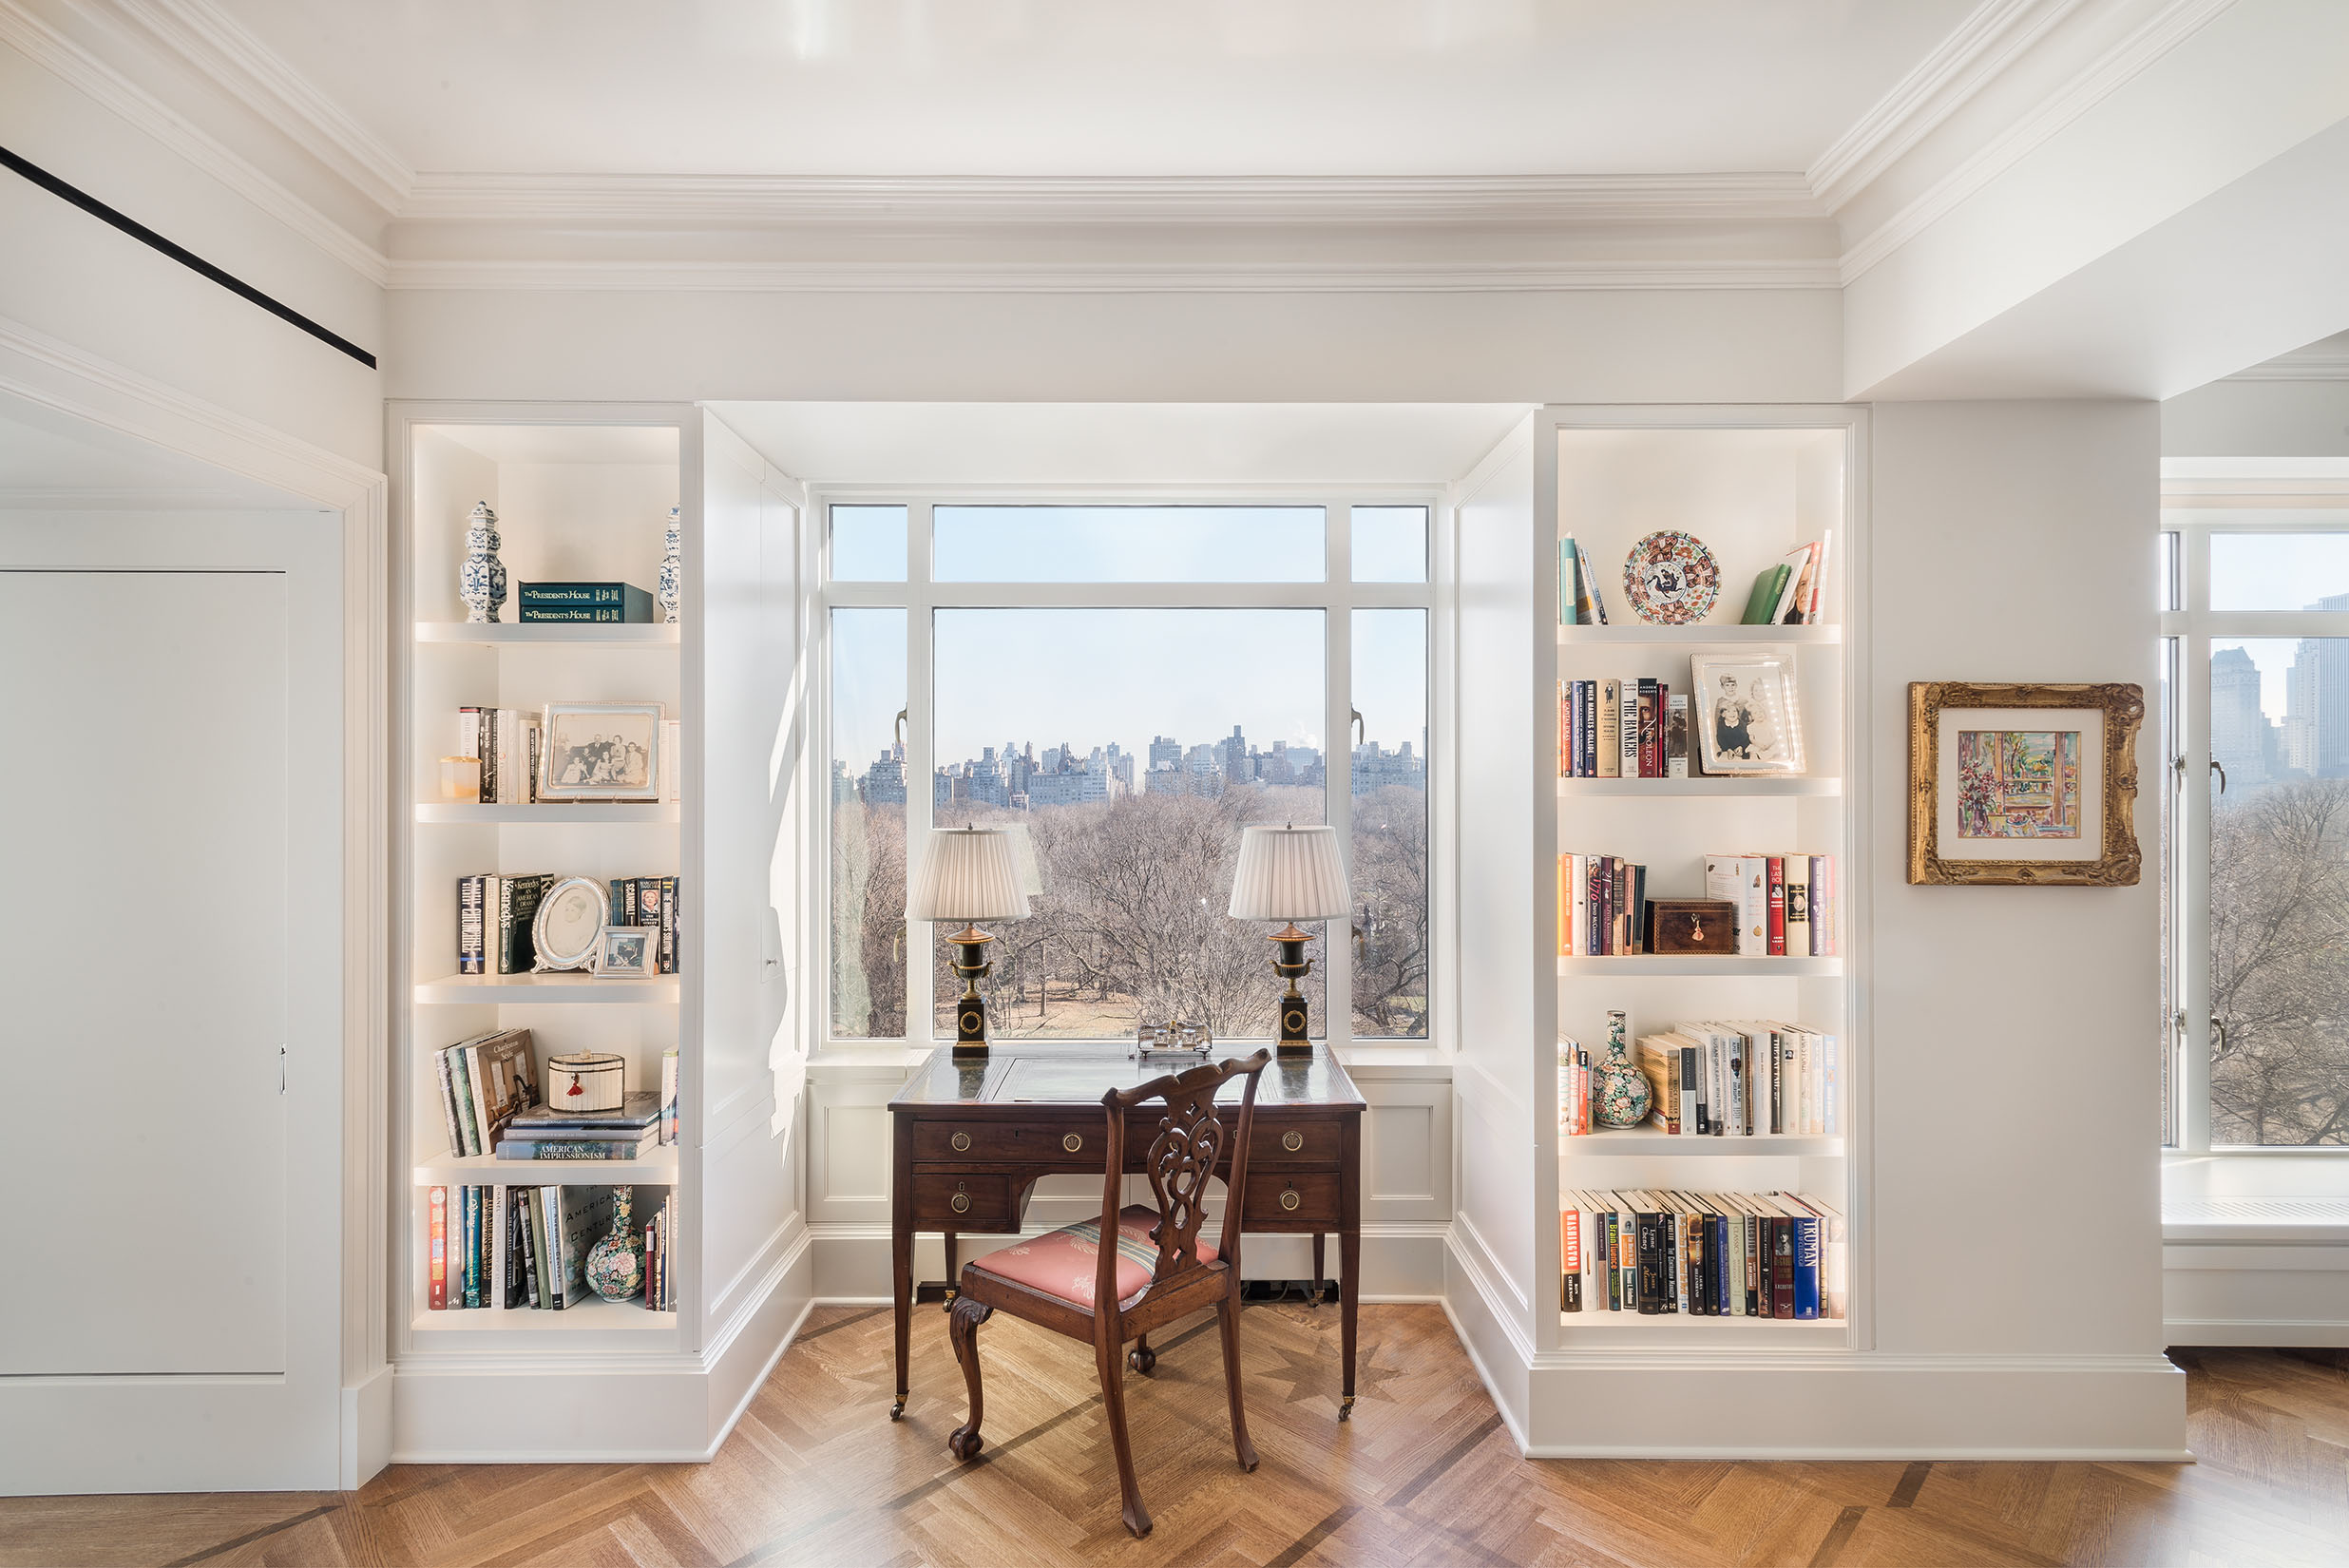 Location:  Central Park West, Manhattan  Type:  Apartment  Sq/Ft:  2,600   Details:  Level 5 Finish White Wall, Moulding, High Gloss Ceilings